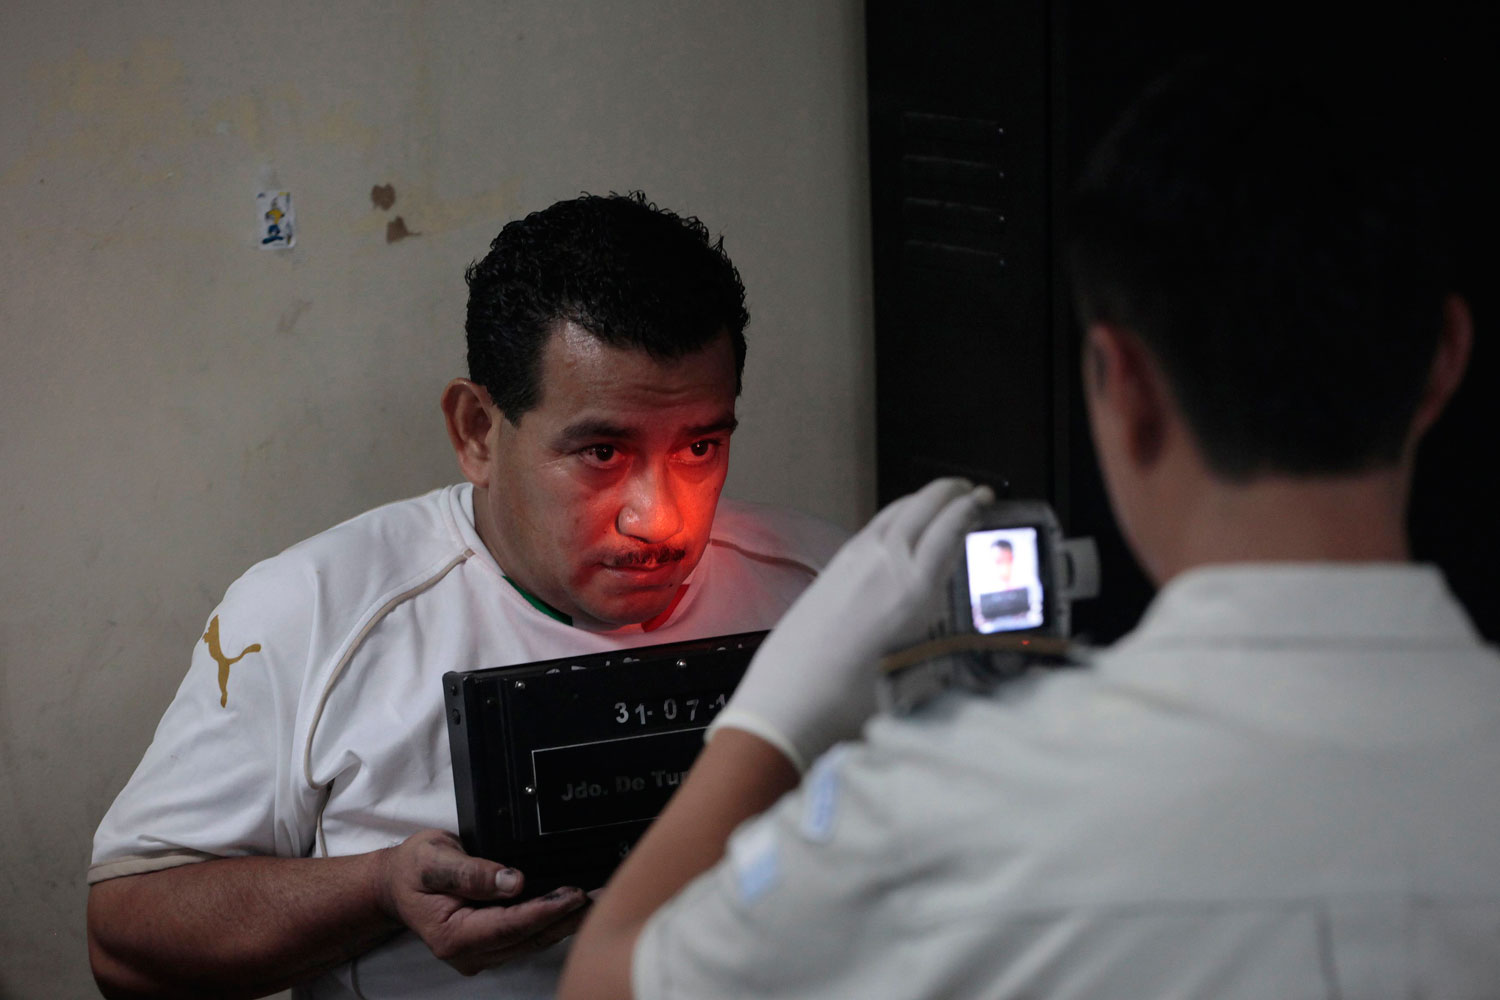 July 31, 2011. Juan Hernandez Sanchez (L), a suspect in the murder of Argentine folk singer Facundo Cabral, has his mugshot taken by the police in Guatemala City. Cabral was killed on July 9, 2011 while on the way to the airport in Guatemala City.